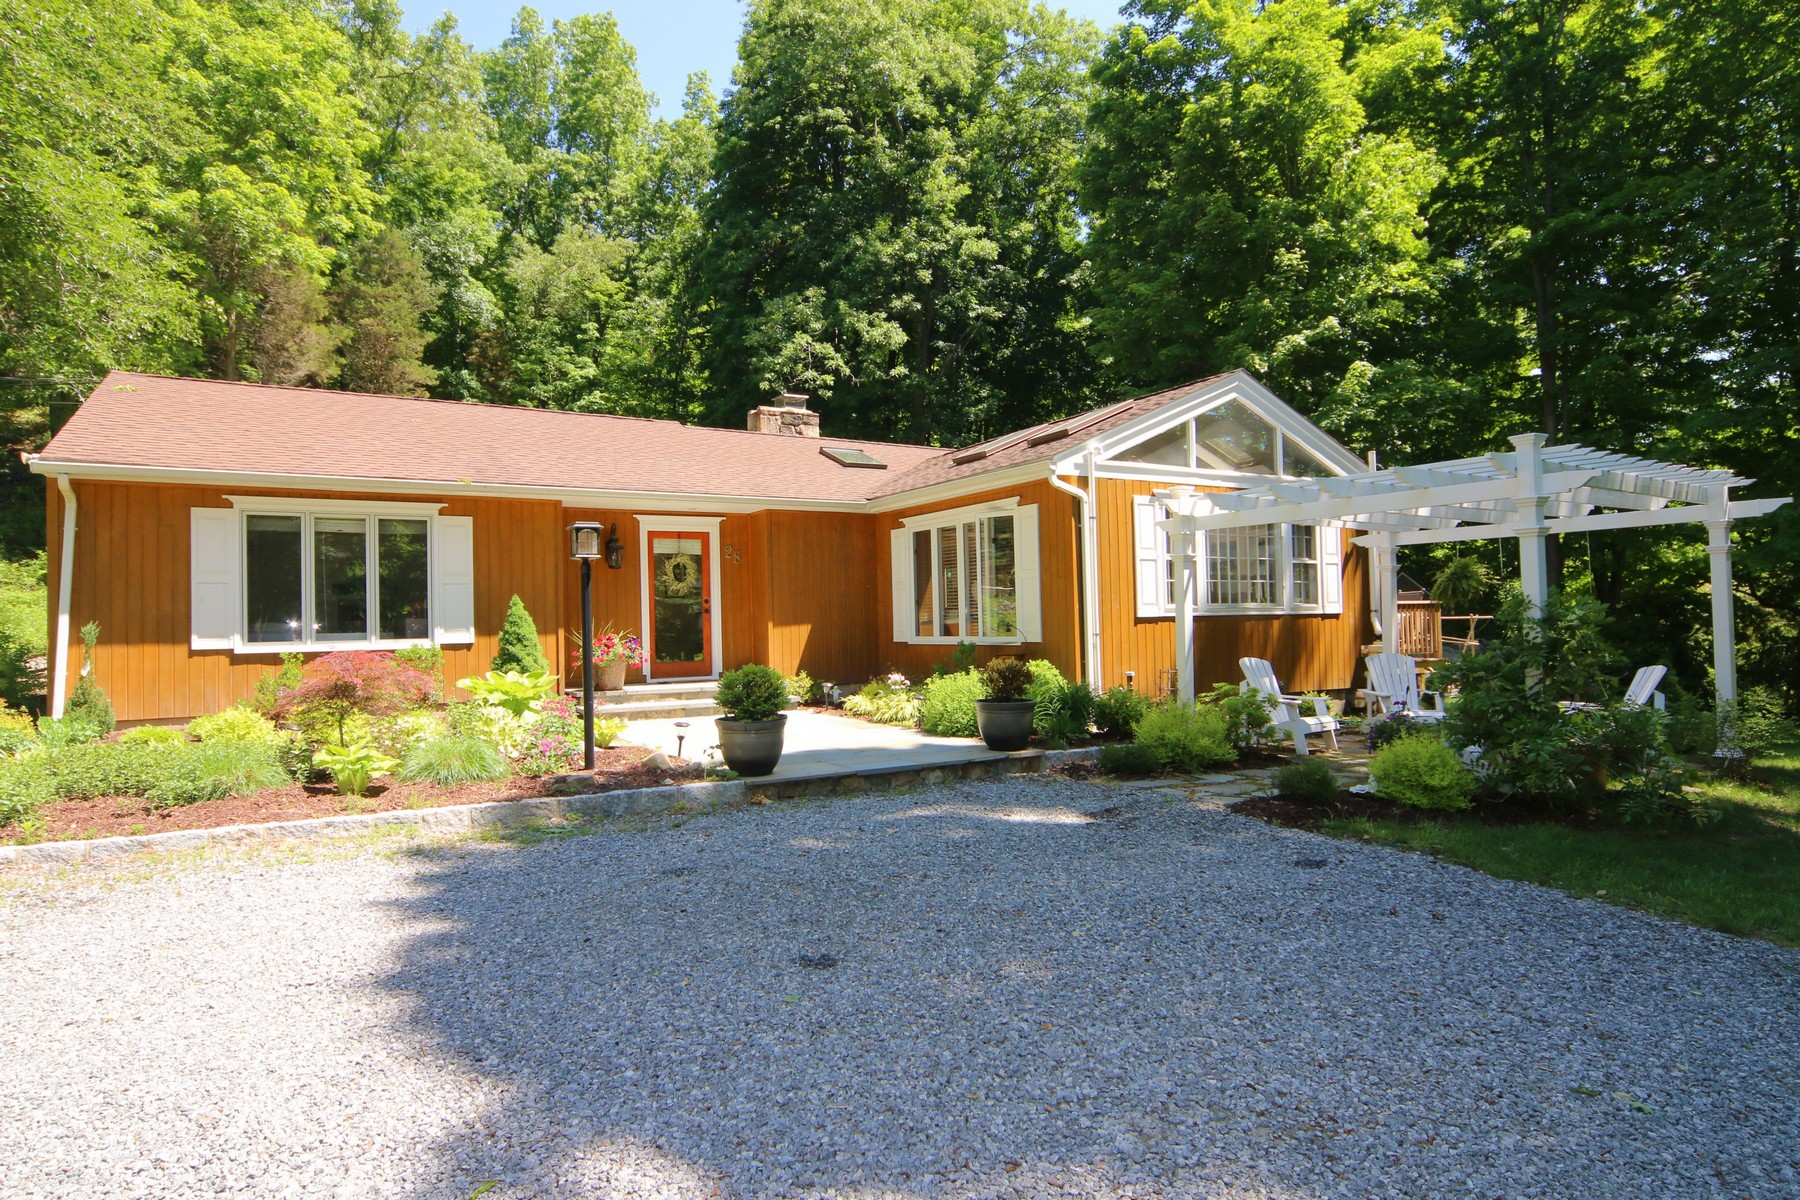 Single Family Home for Sale at Like New Modern Ranch 28 Cooper Hill Road Ridgefield, Connecticut 06877 United States